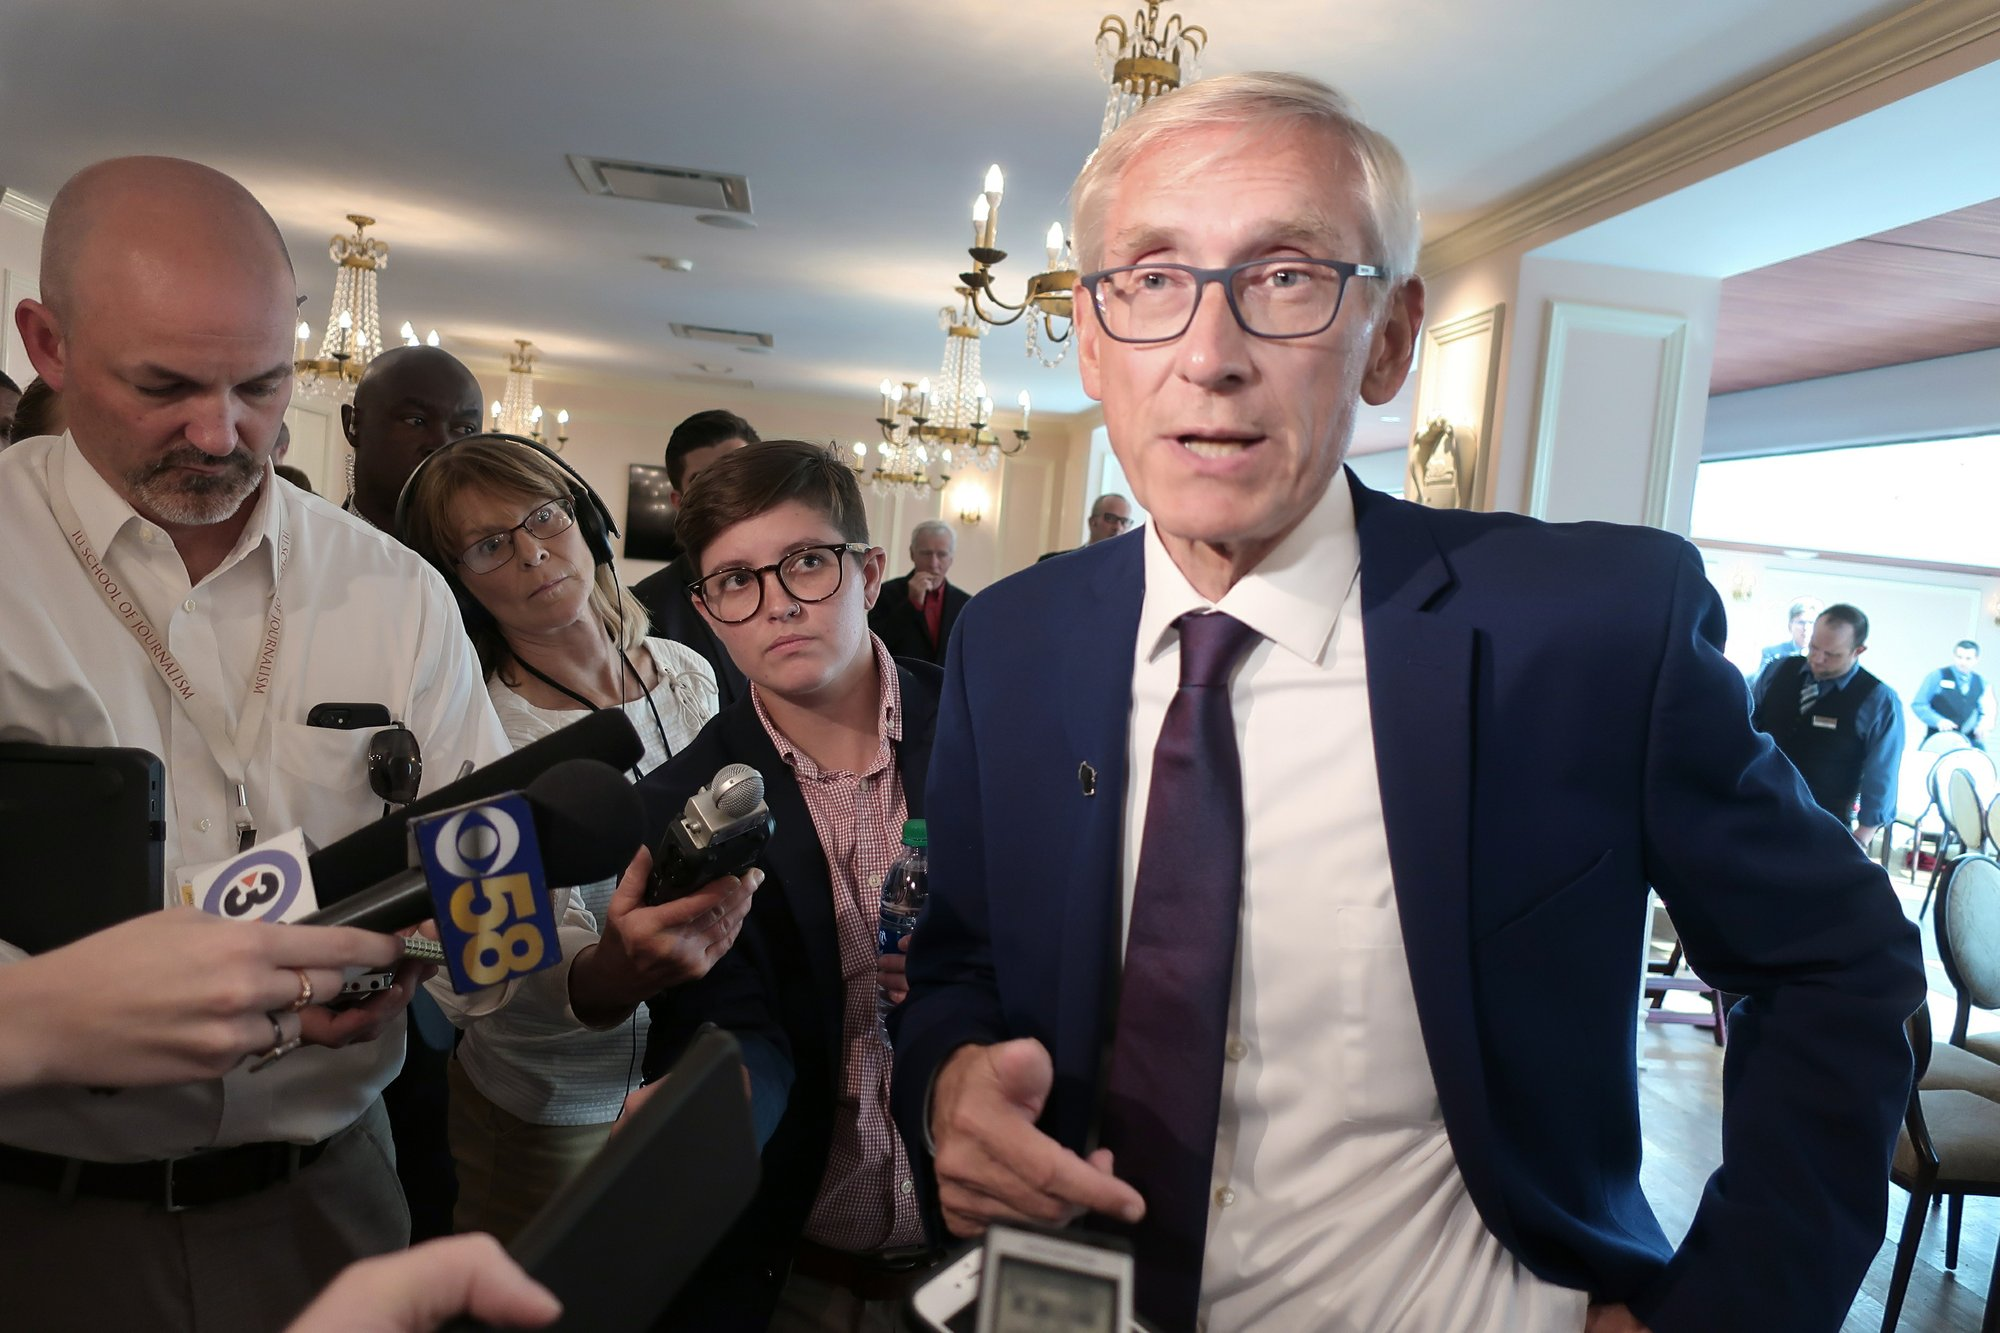 APNewsBreak: Evers issuing 1st Wisconsin pardons in 9 years